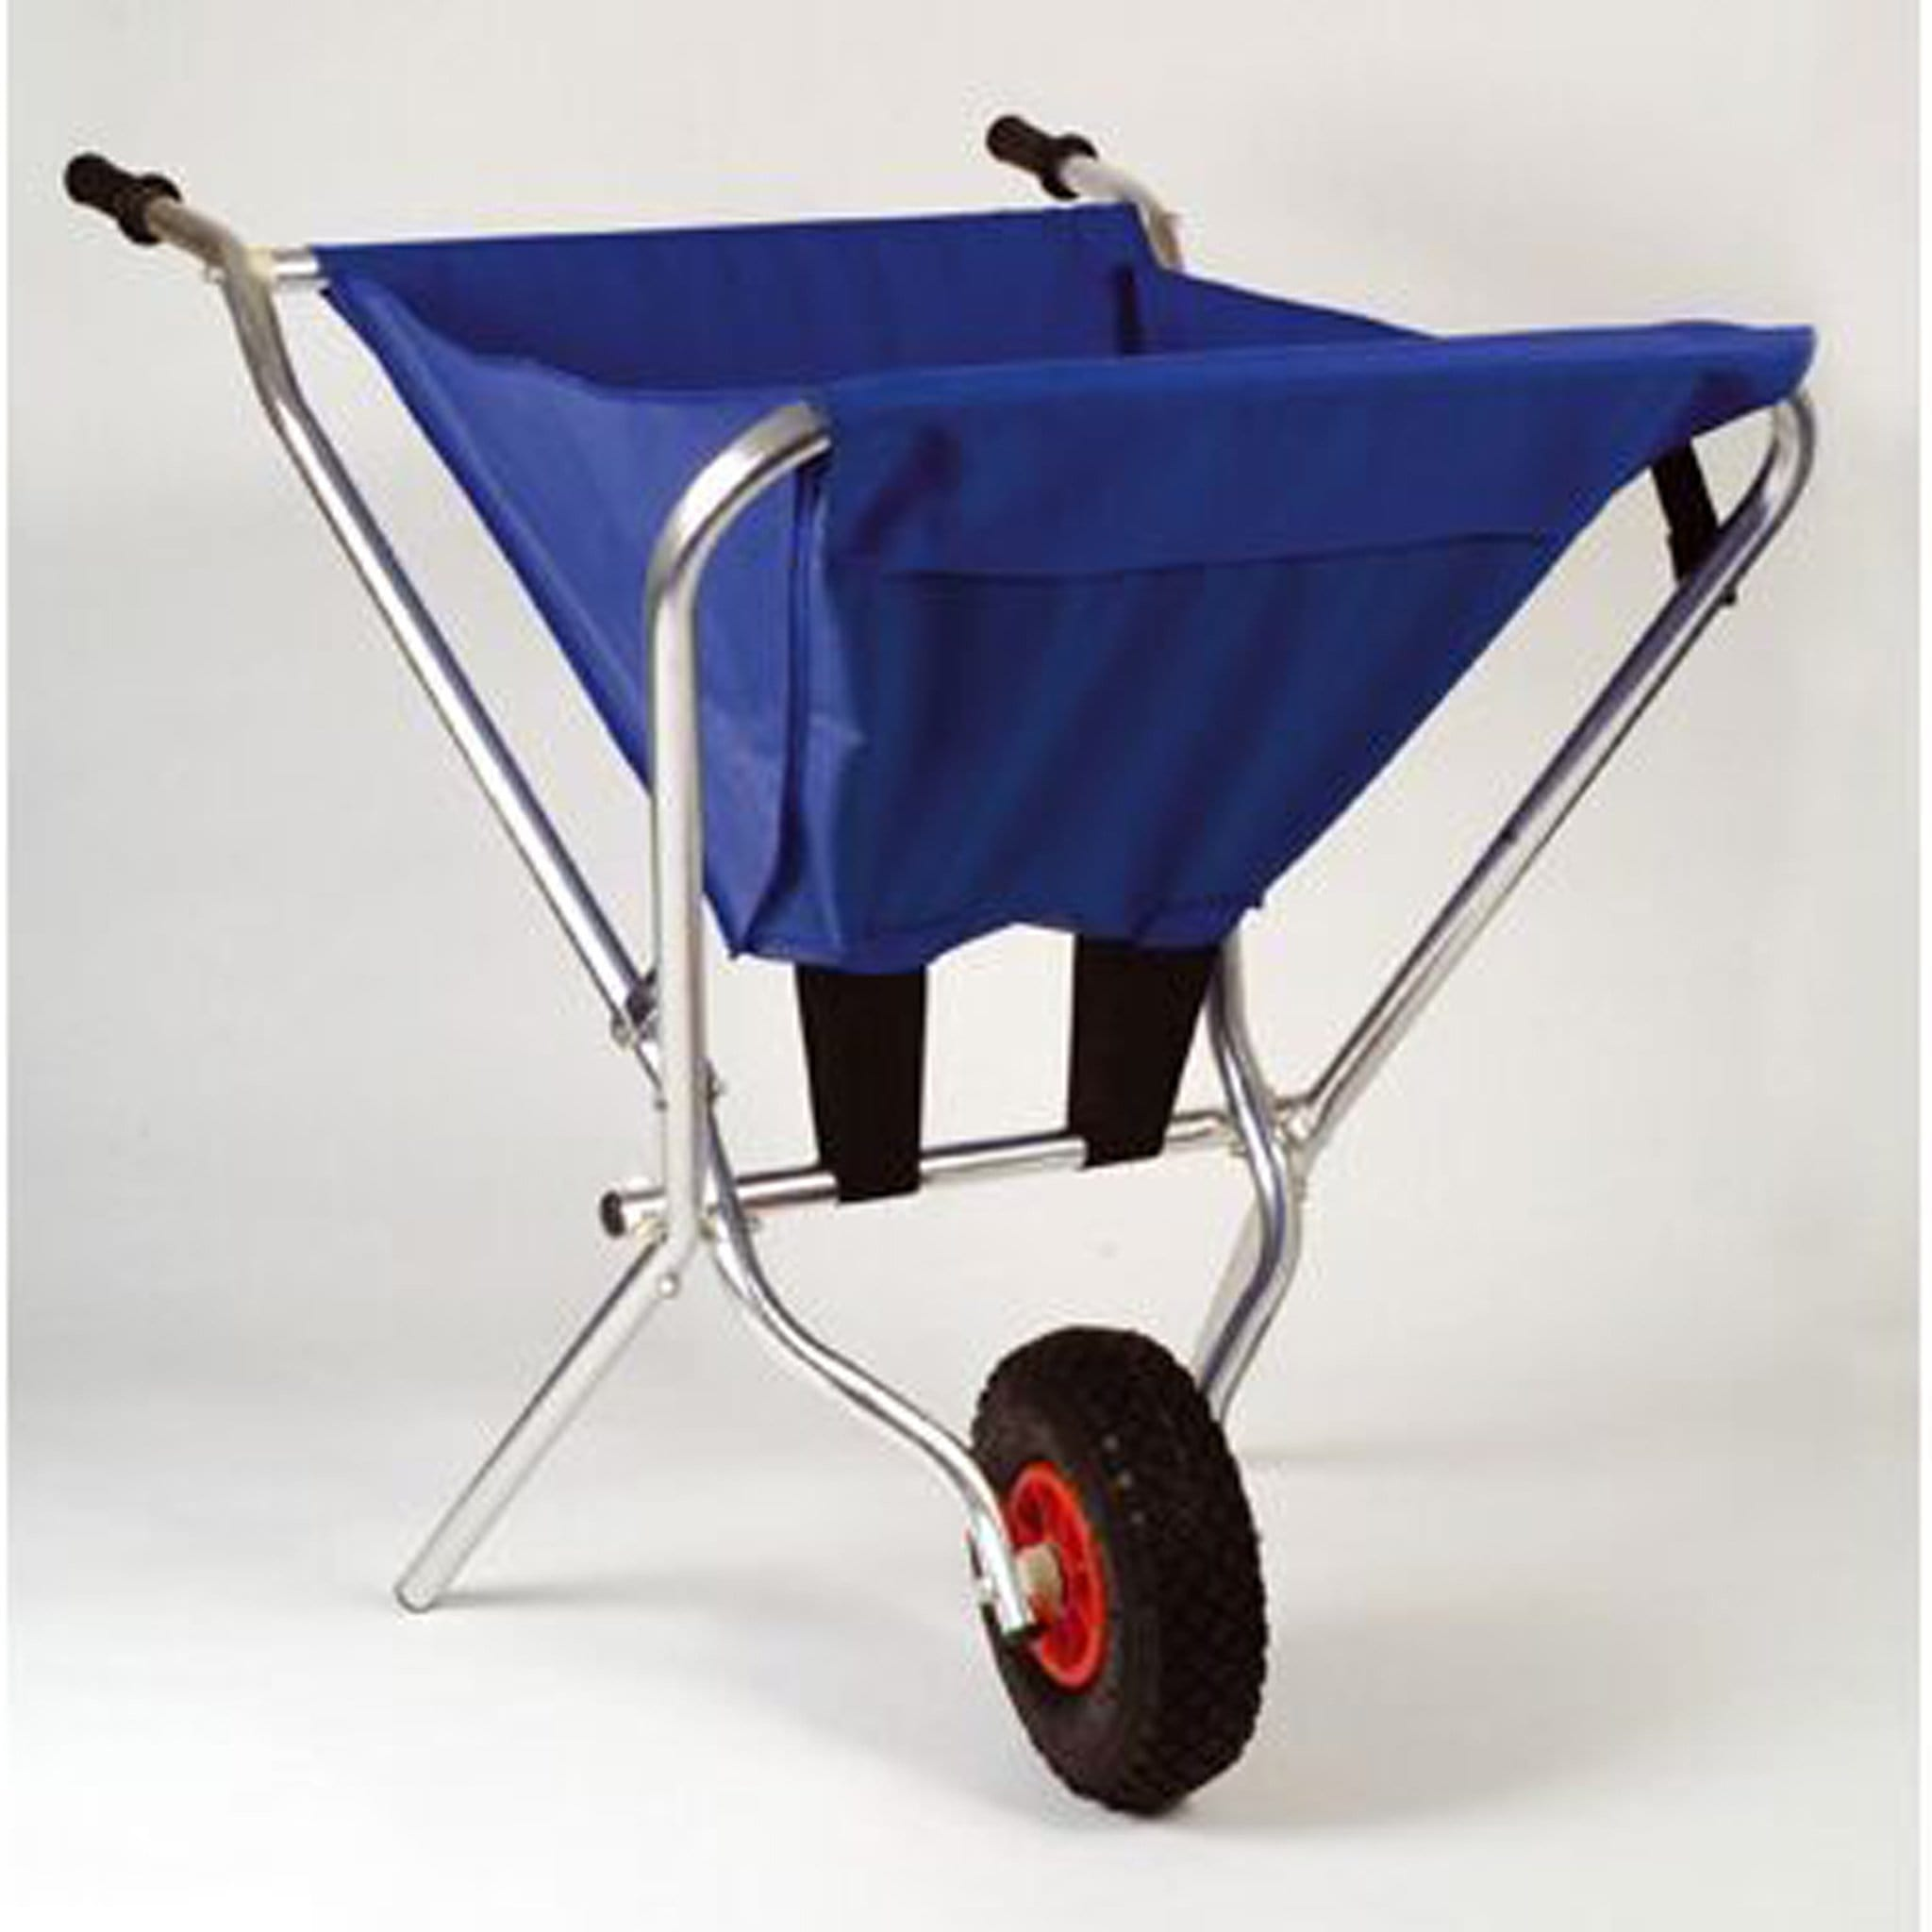 Stablekit Lightweight Folding Wheelbarrow